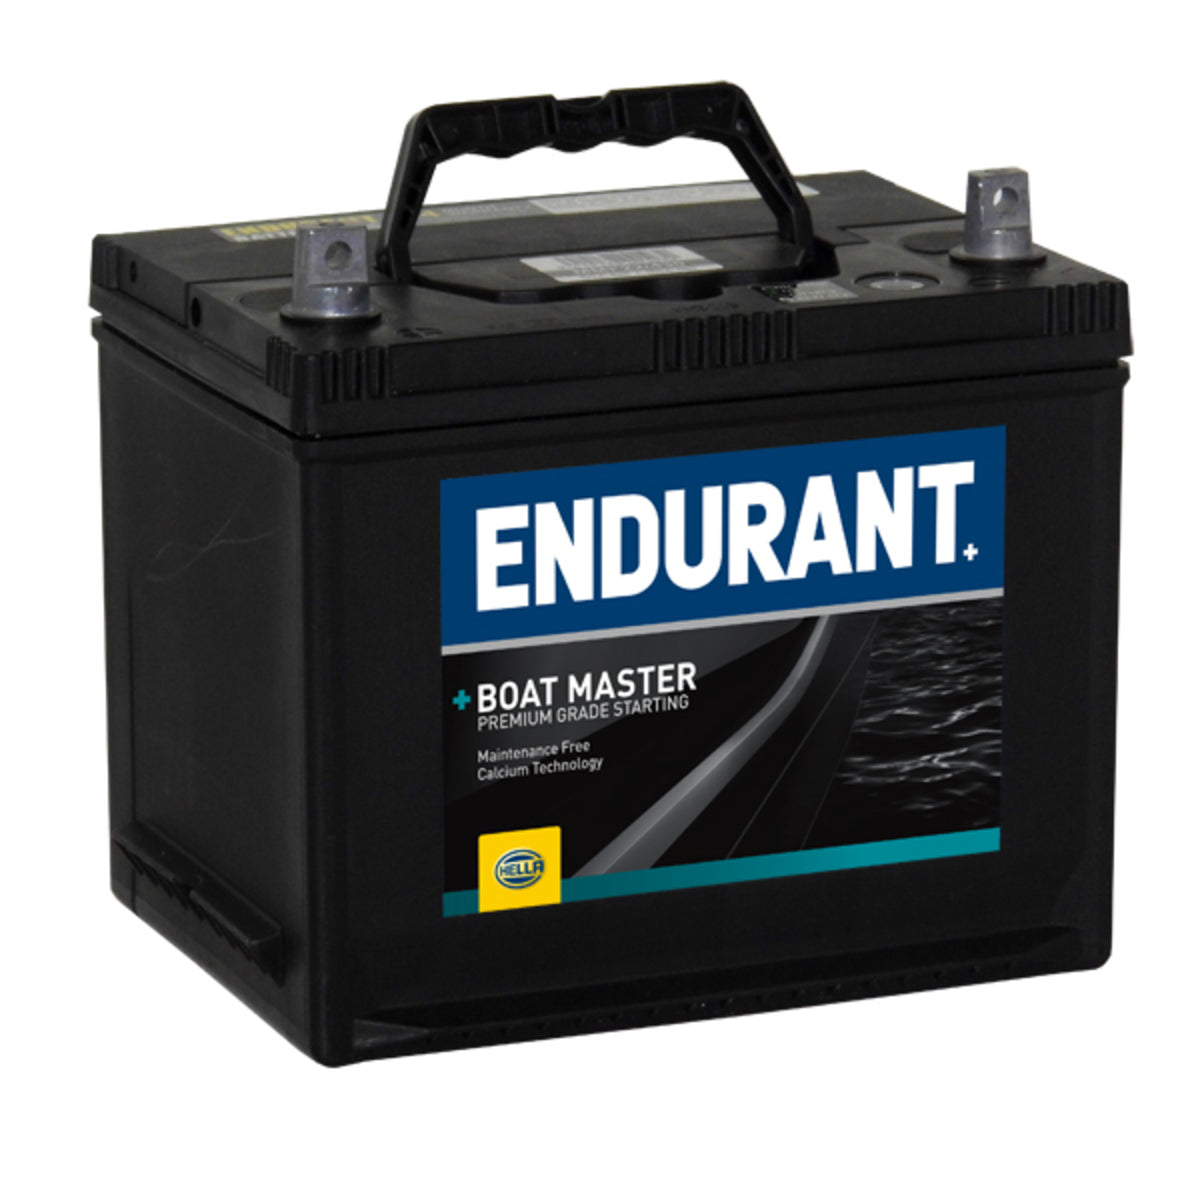 Hella Endurant Boat Master Starting Battery 430CCA 12V